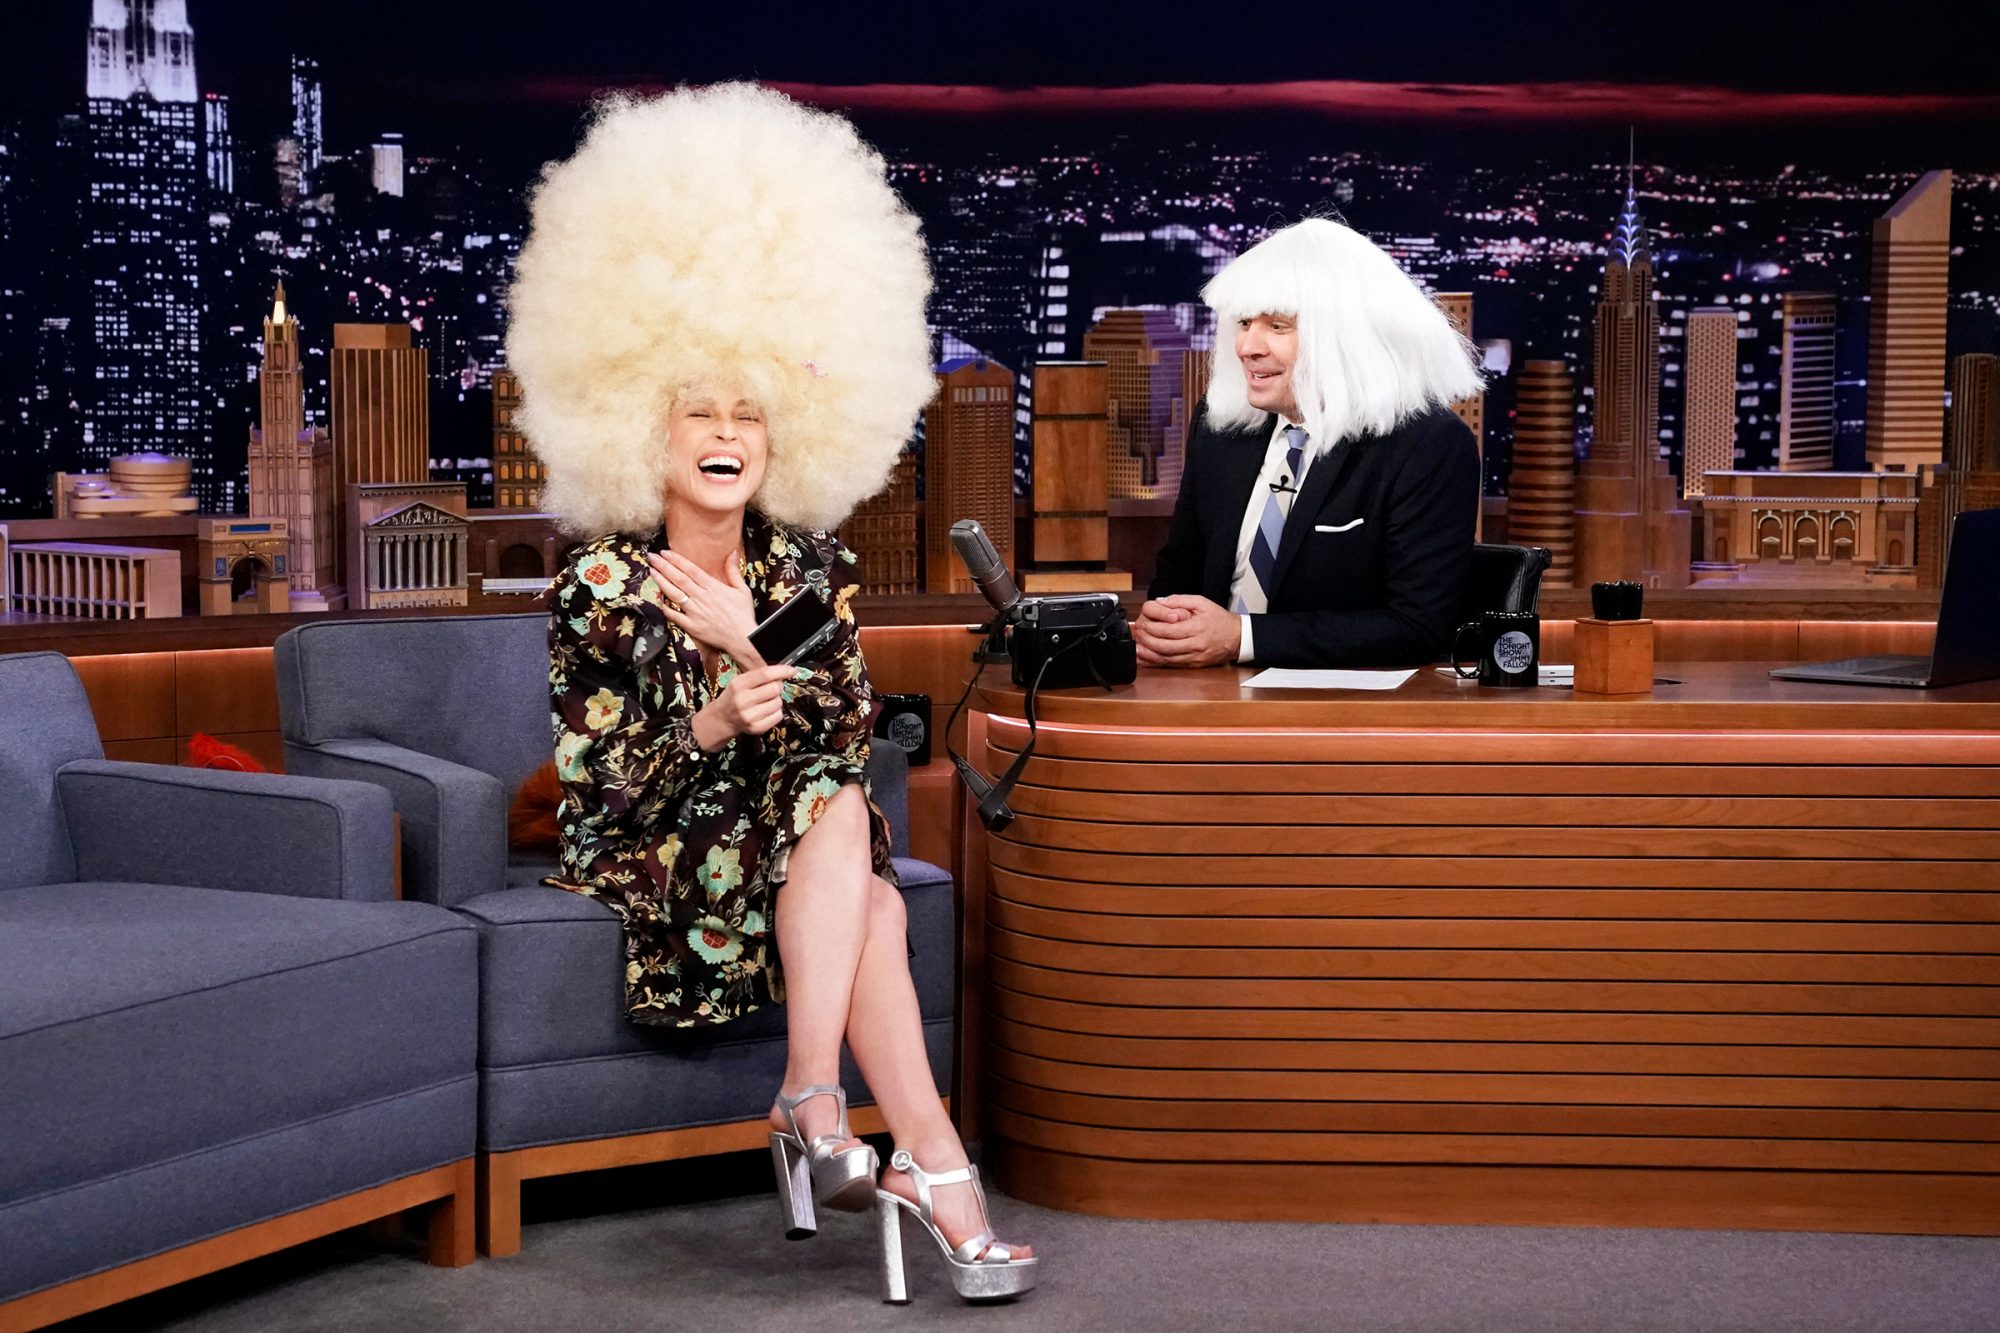 Noomi Rapace during an interview with host Jimmy Fallon on November 6, 2019